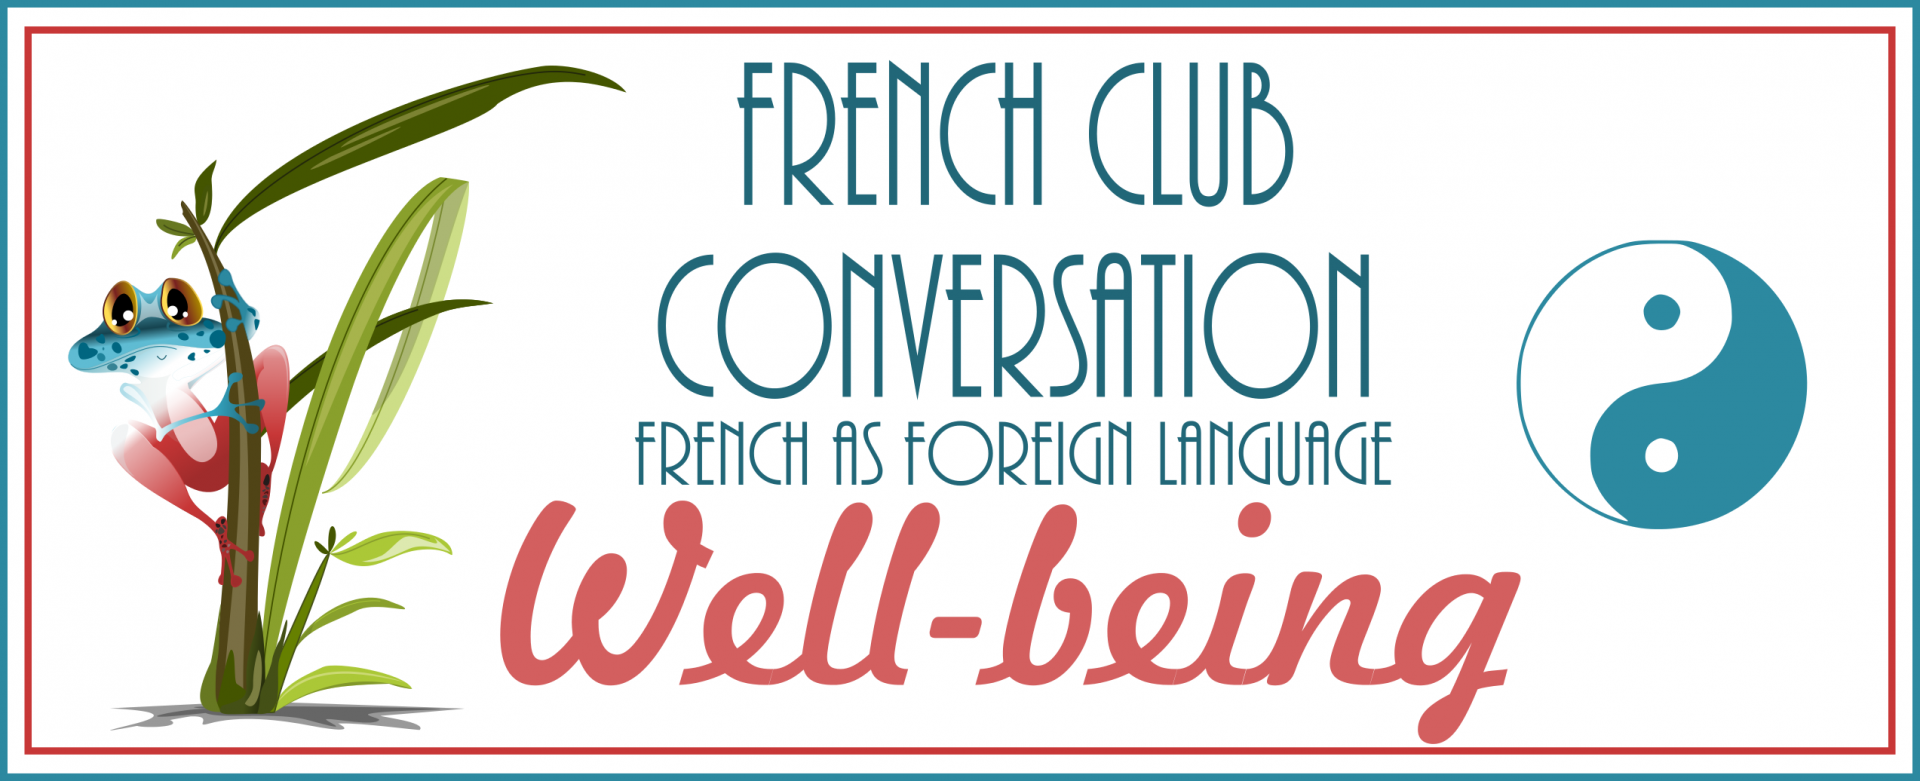 French Club conversation Well-Being